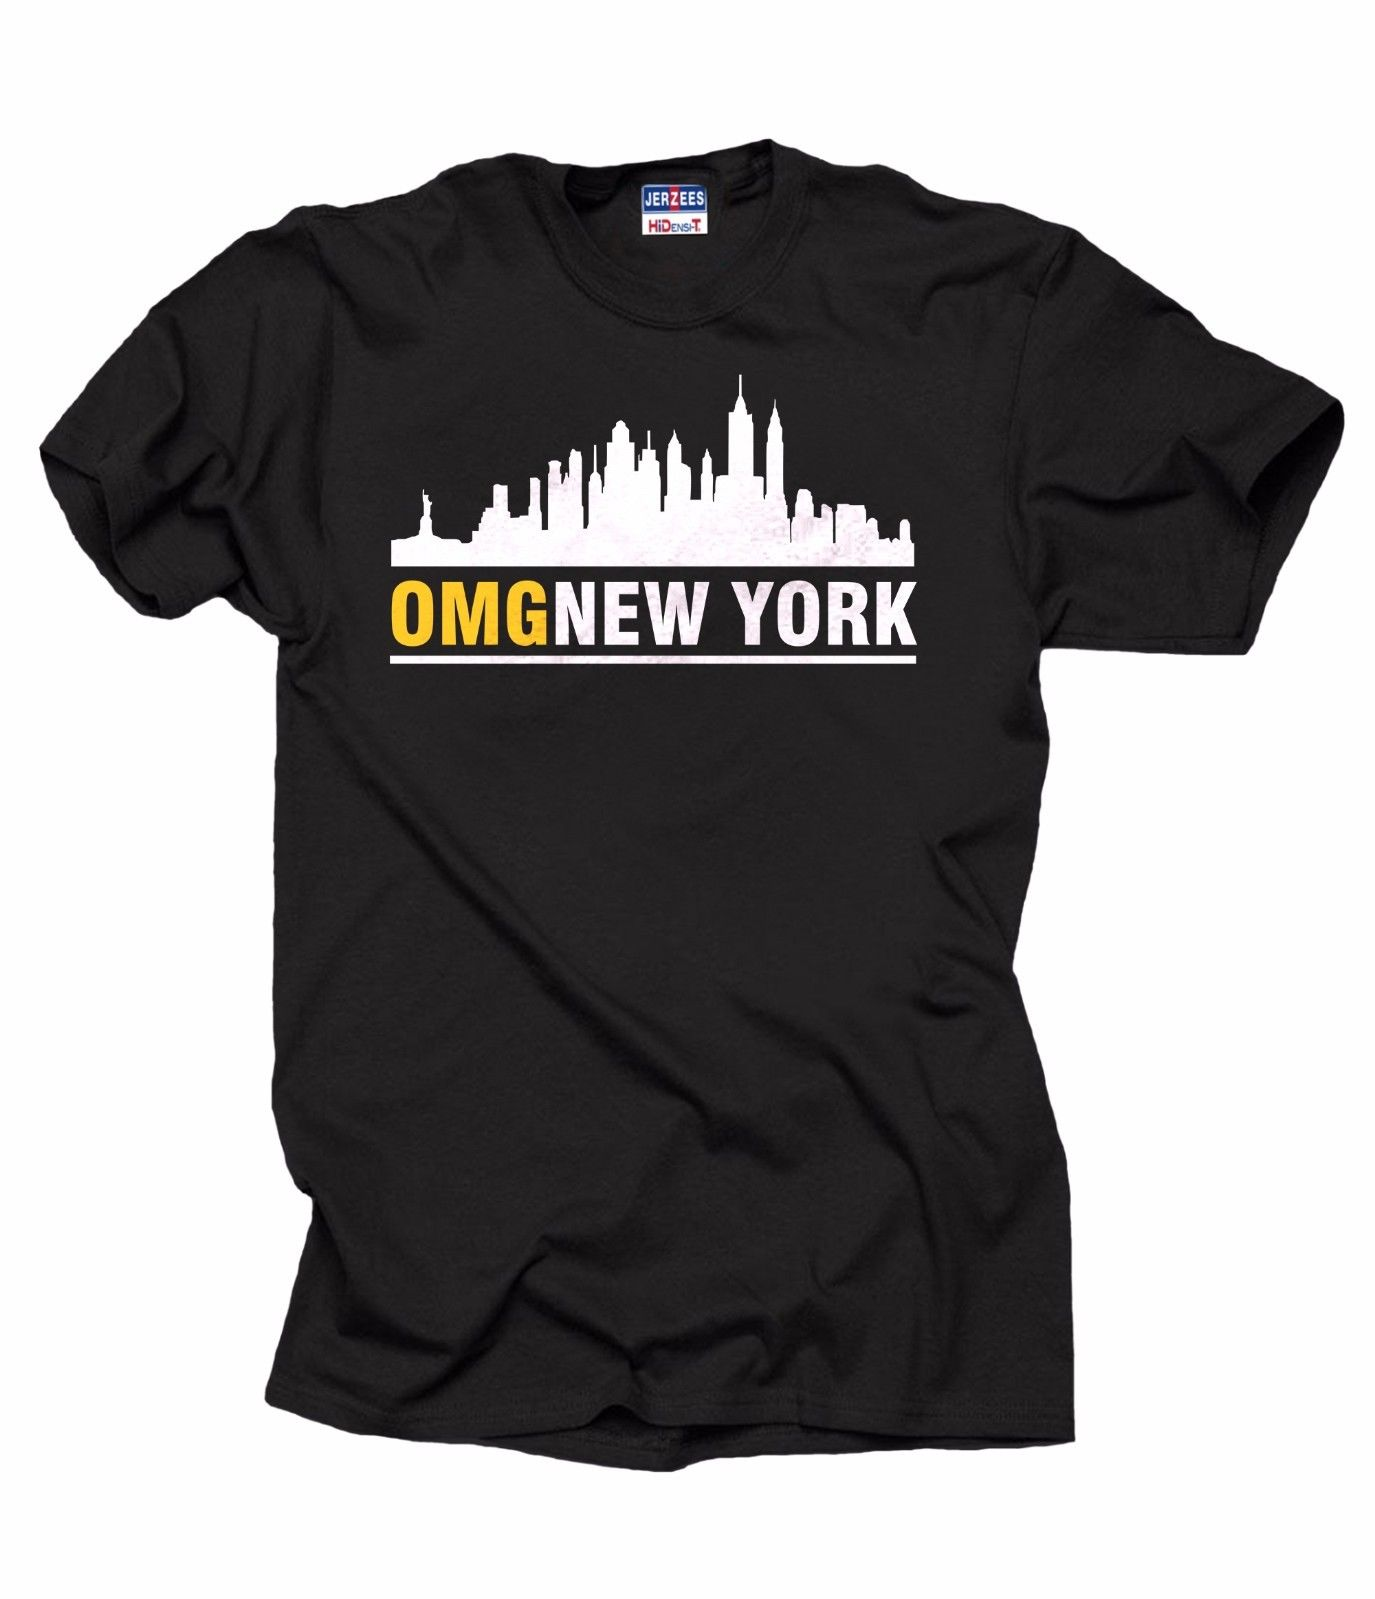 2019 Fashion O-Neck Hipster T <font><b>Shirts</b></font> New York T-<font><b>Shirt</b></font> <font><b>I</b></font> <font><b>Love</b></font> New York Tee <font><b>Shirt</b></font> <font><b>NY</b></font> <font><b>Shirt</b></font> image